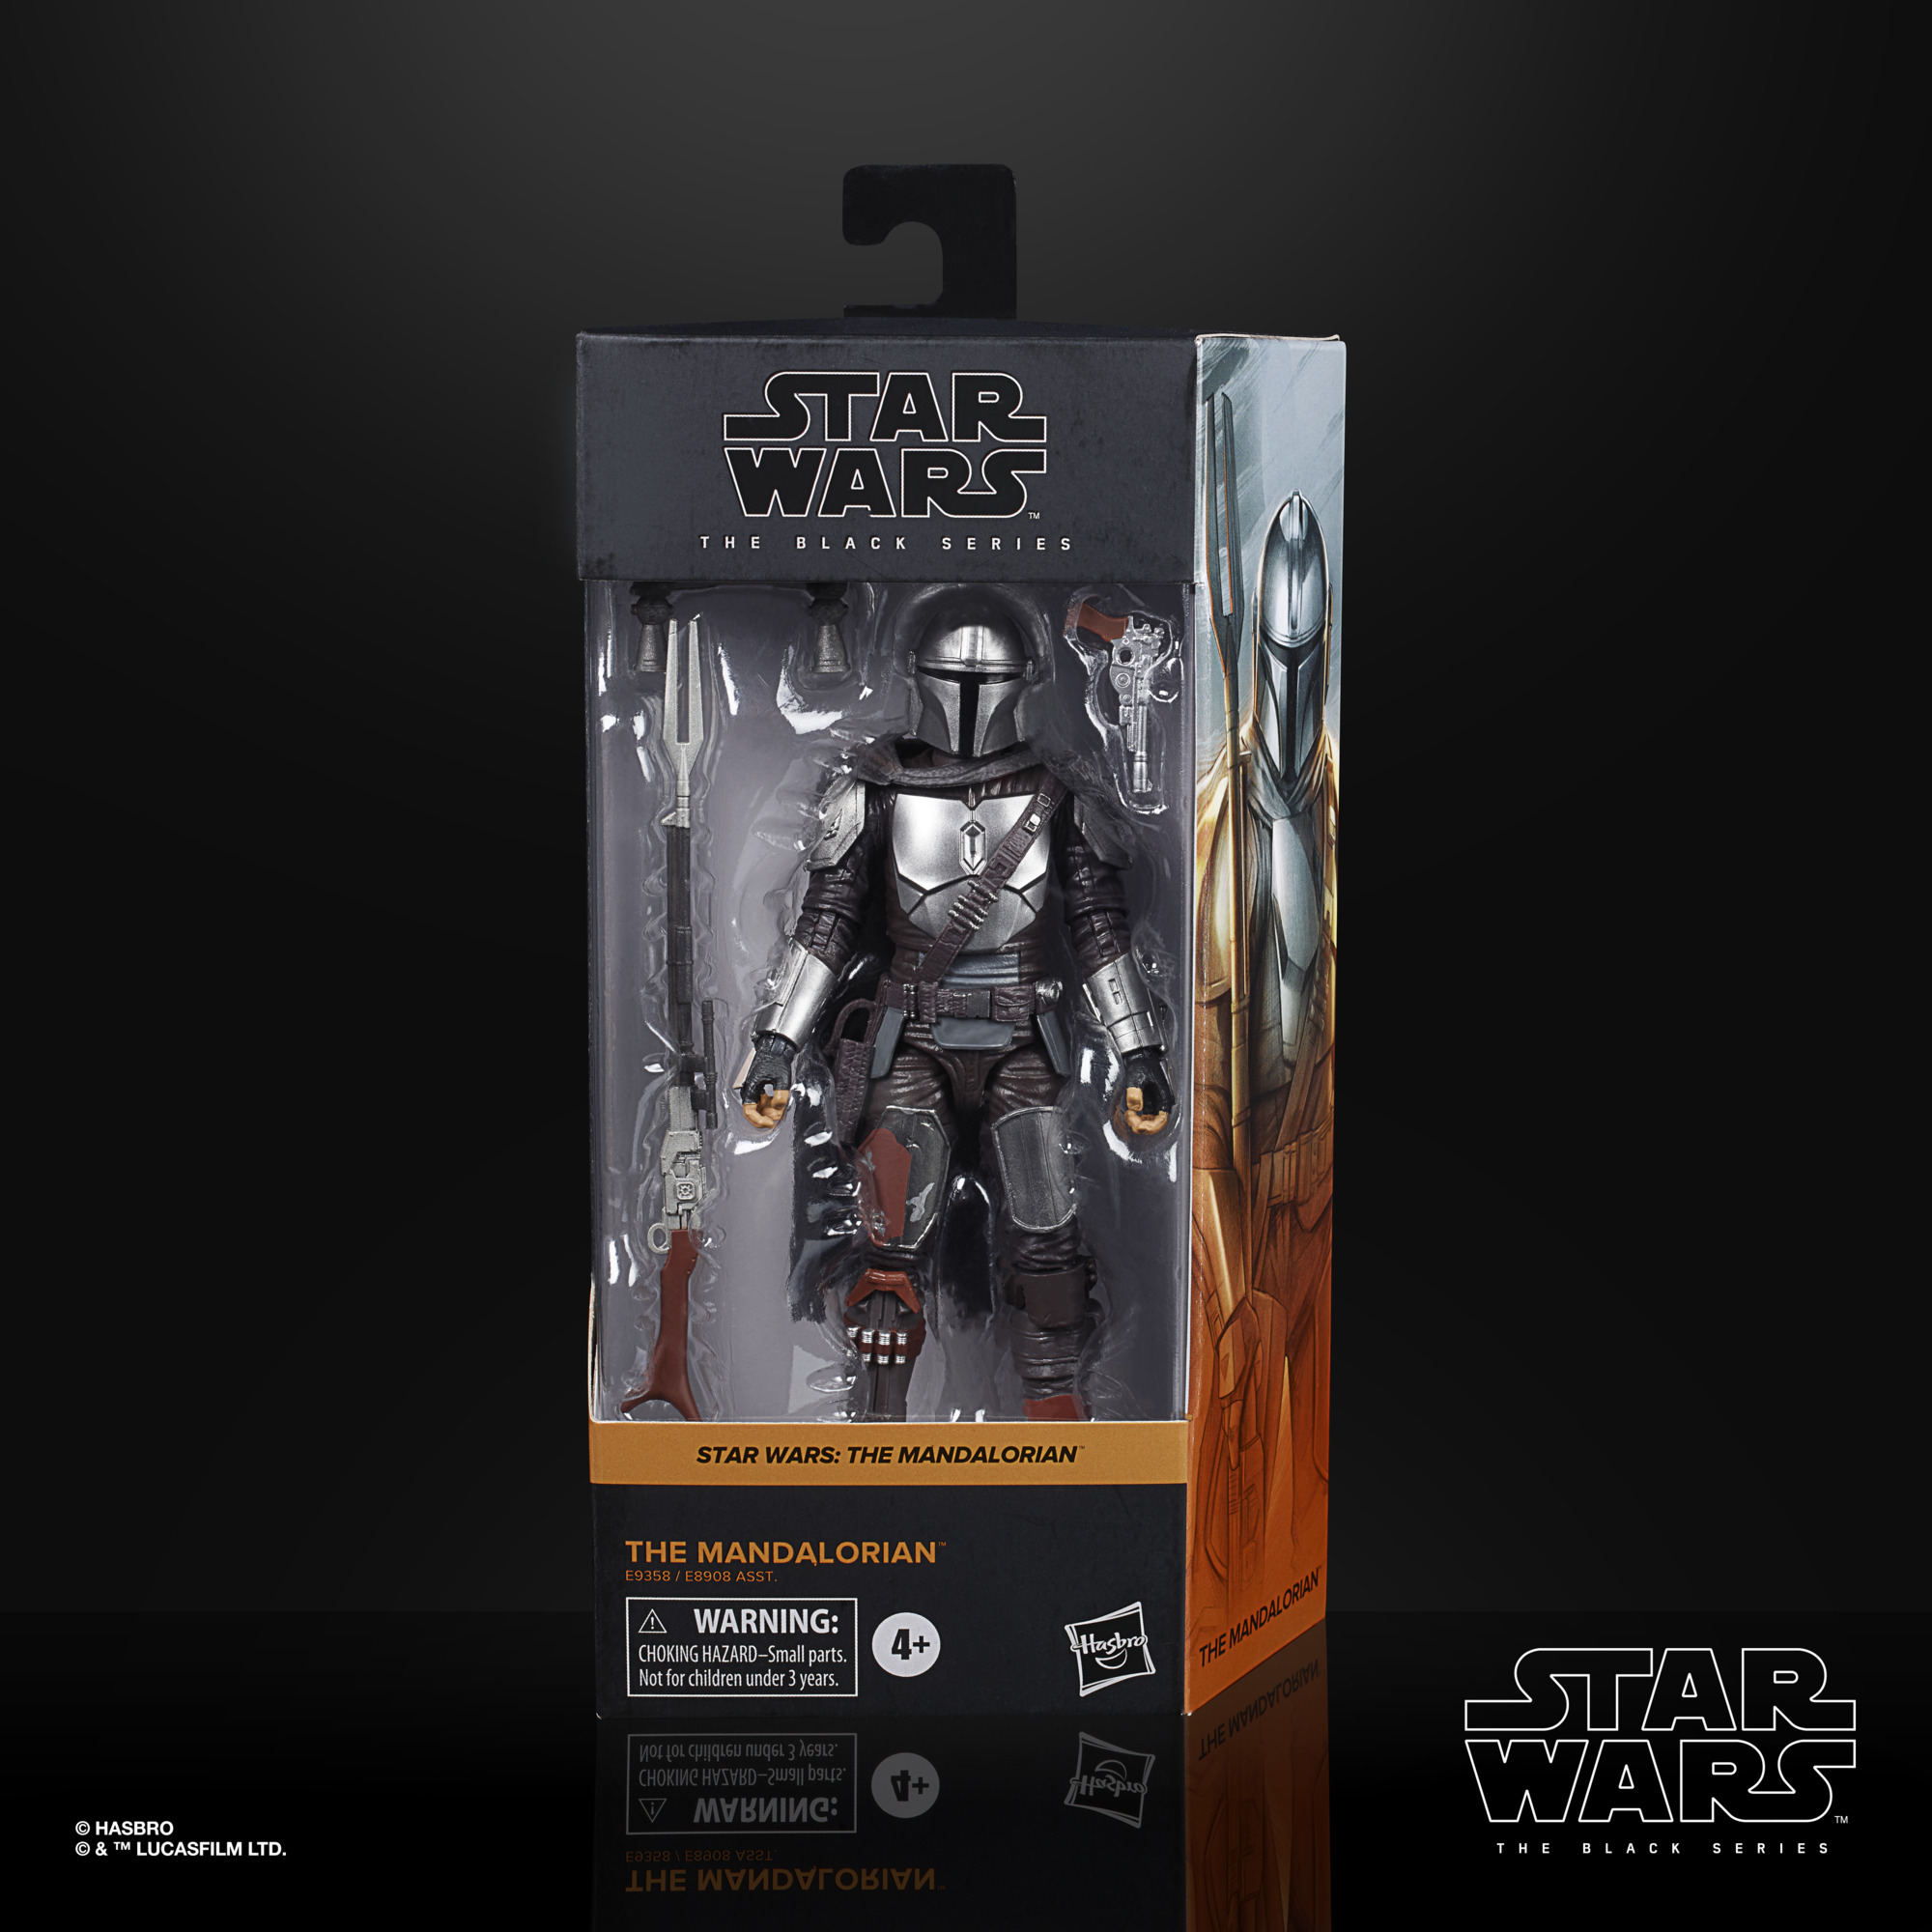 Star Wars The Black Series The Mandalorian (Beskar Armor) 15cm E93585X00 5010993749218